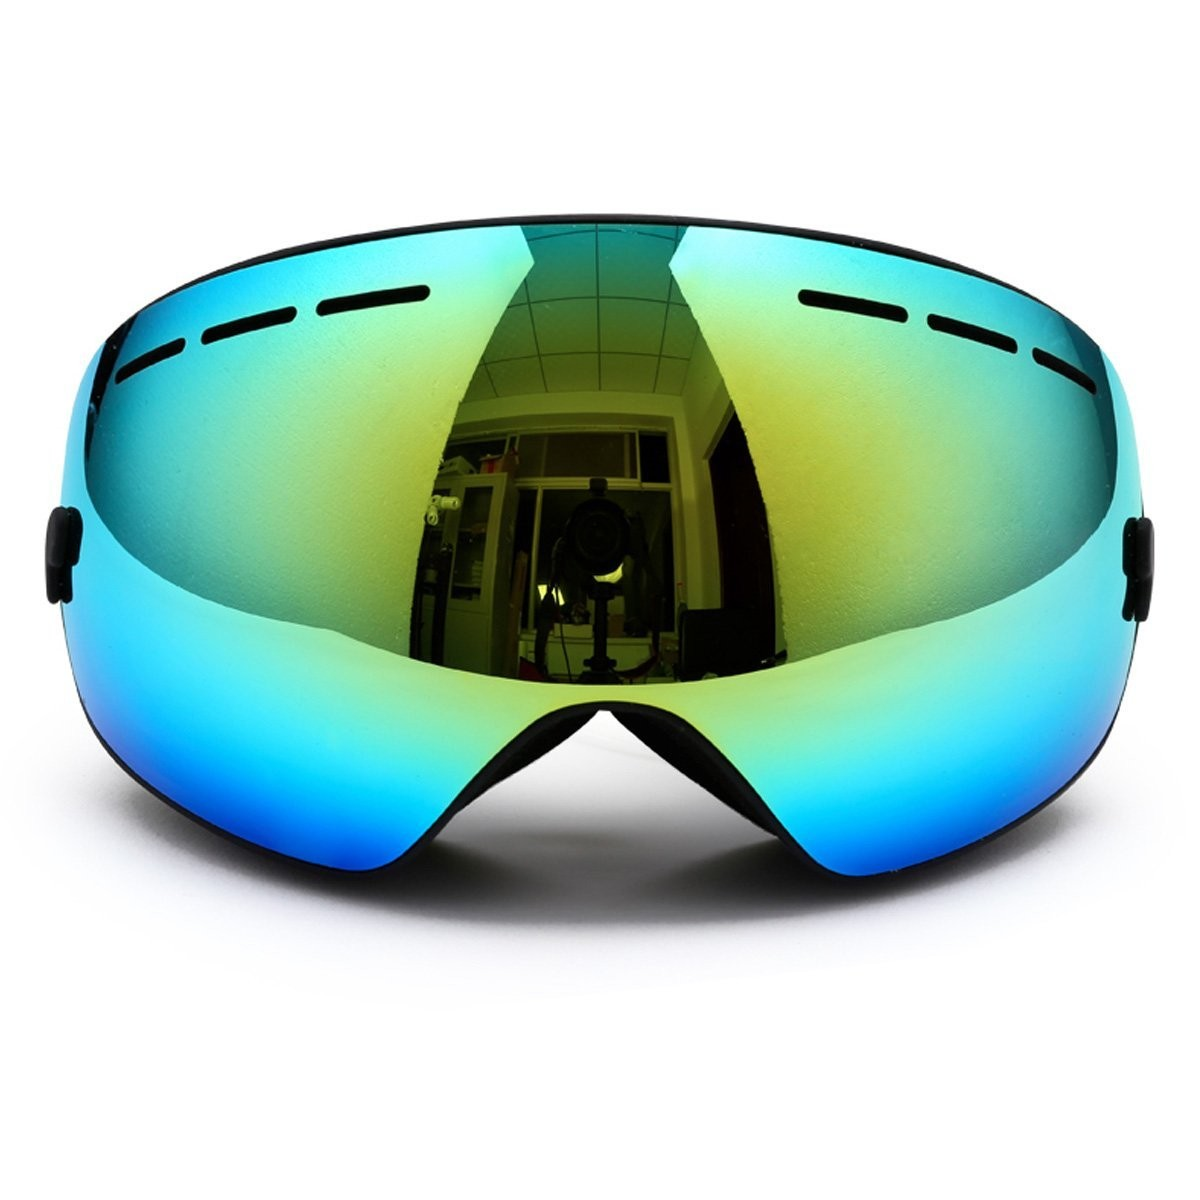 snowboarding glasses  Snowboarding Goggles,Snow Ski Frameless Glasses Mirrored OTG Anti ...